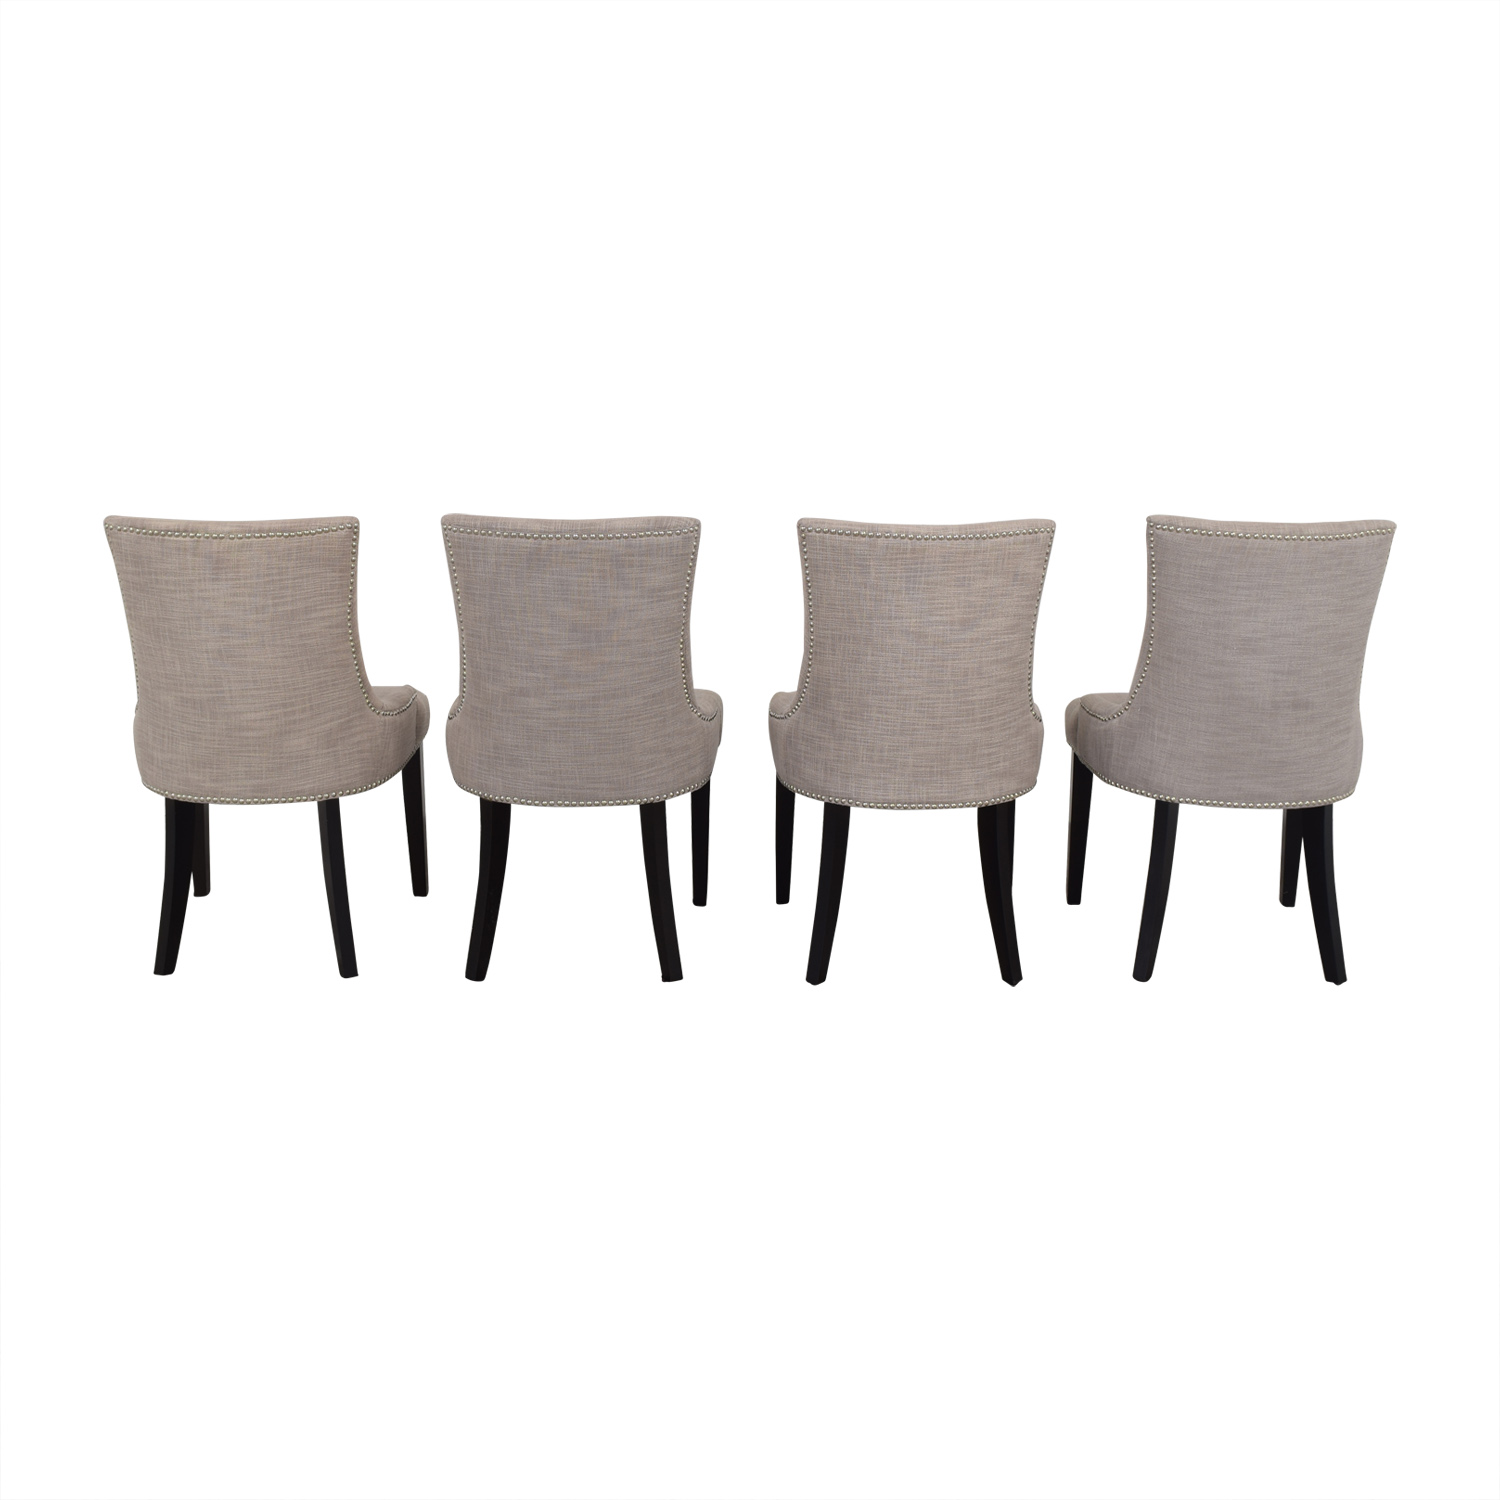 buy Safavieh Lester Dining Chairs Safavieh Chairs